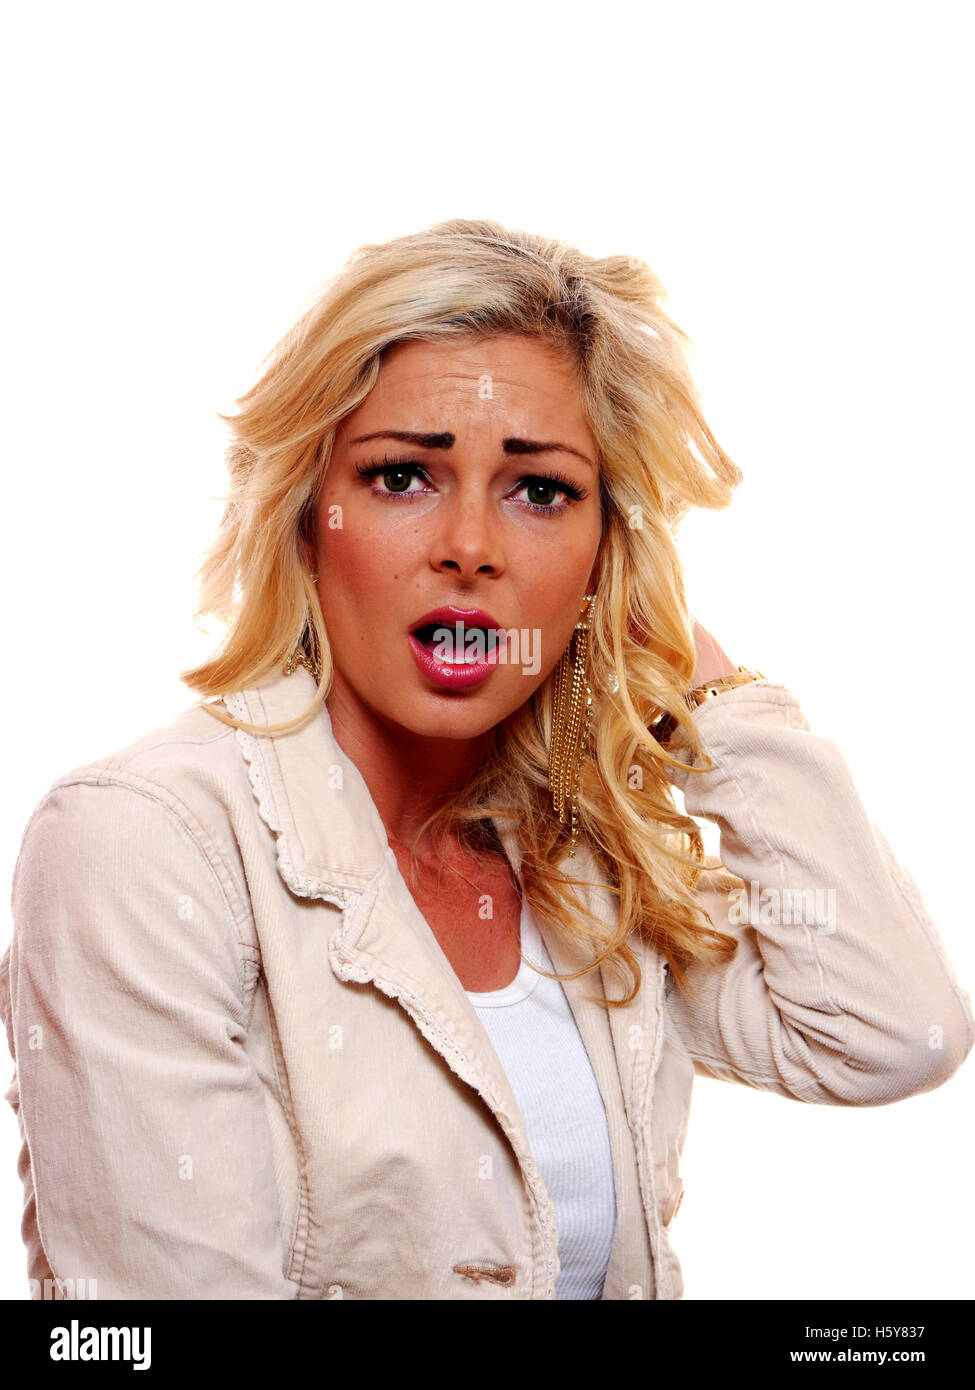 A image of a shocked, surprised, American caucasian, blond woman. - Stock Image